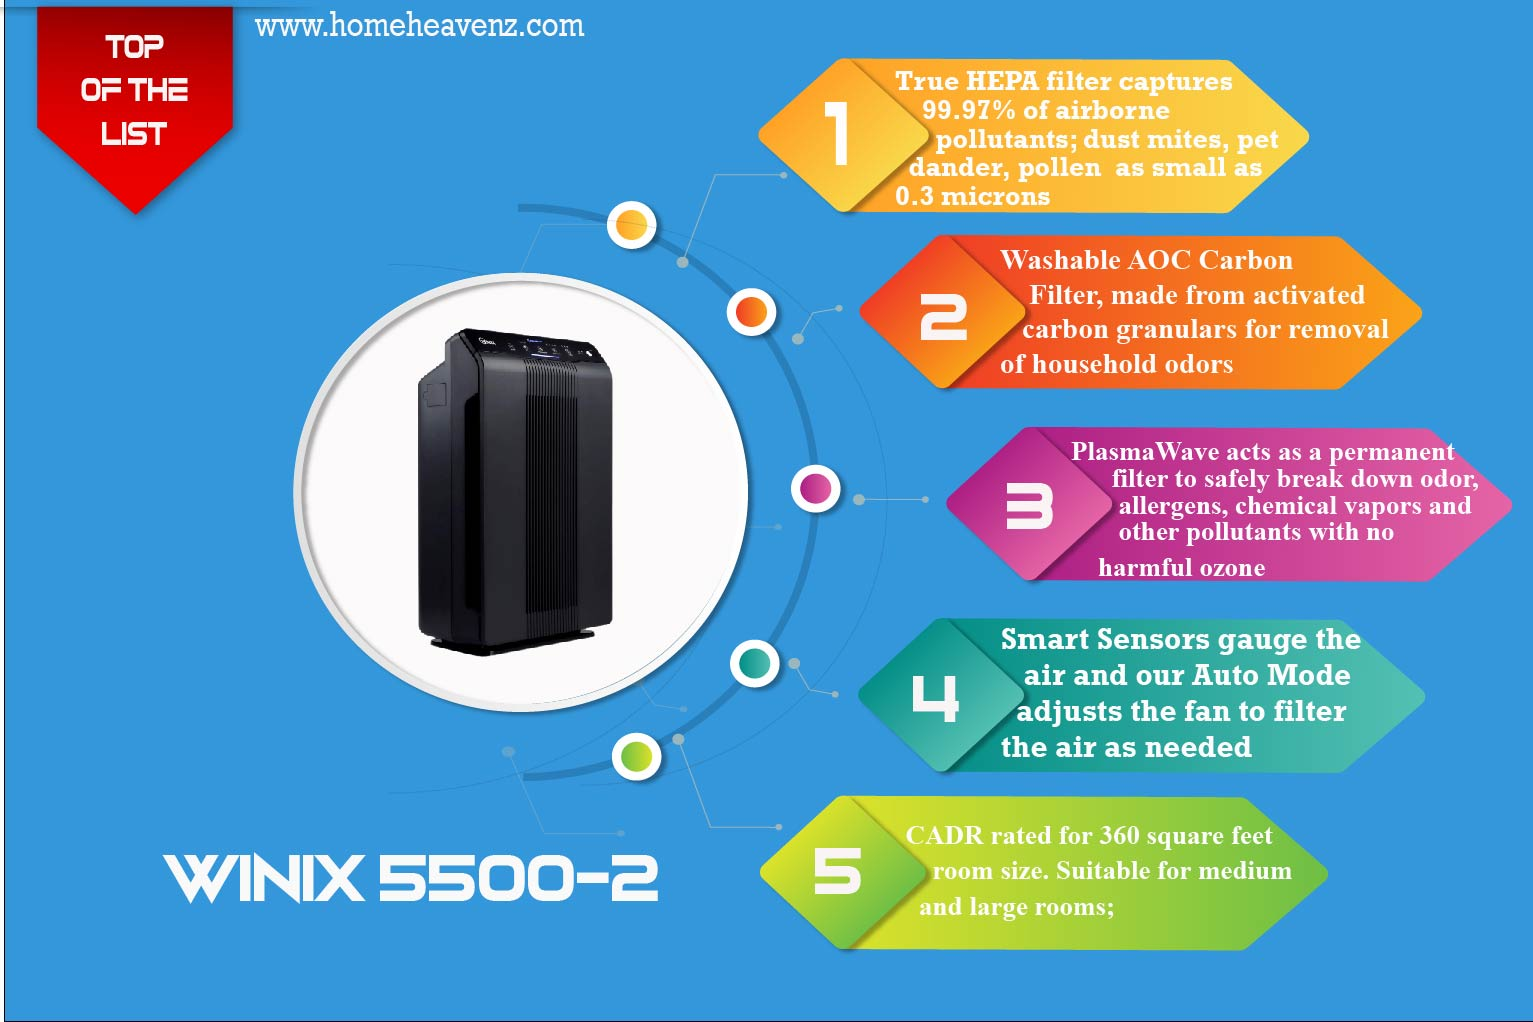 inforgraphic-with-detailed-features-including-true-hepa-filter-carbon-filter-plasma-wave-technology-smart-sensors-cadr-rating-of-Winix-5500-2 – Best-Air-Purifier-with-washable-filter